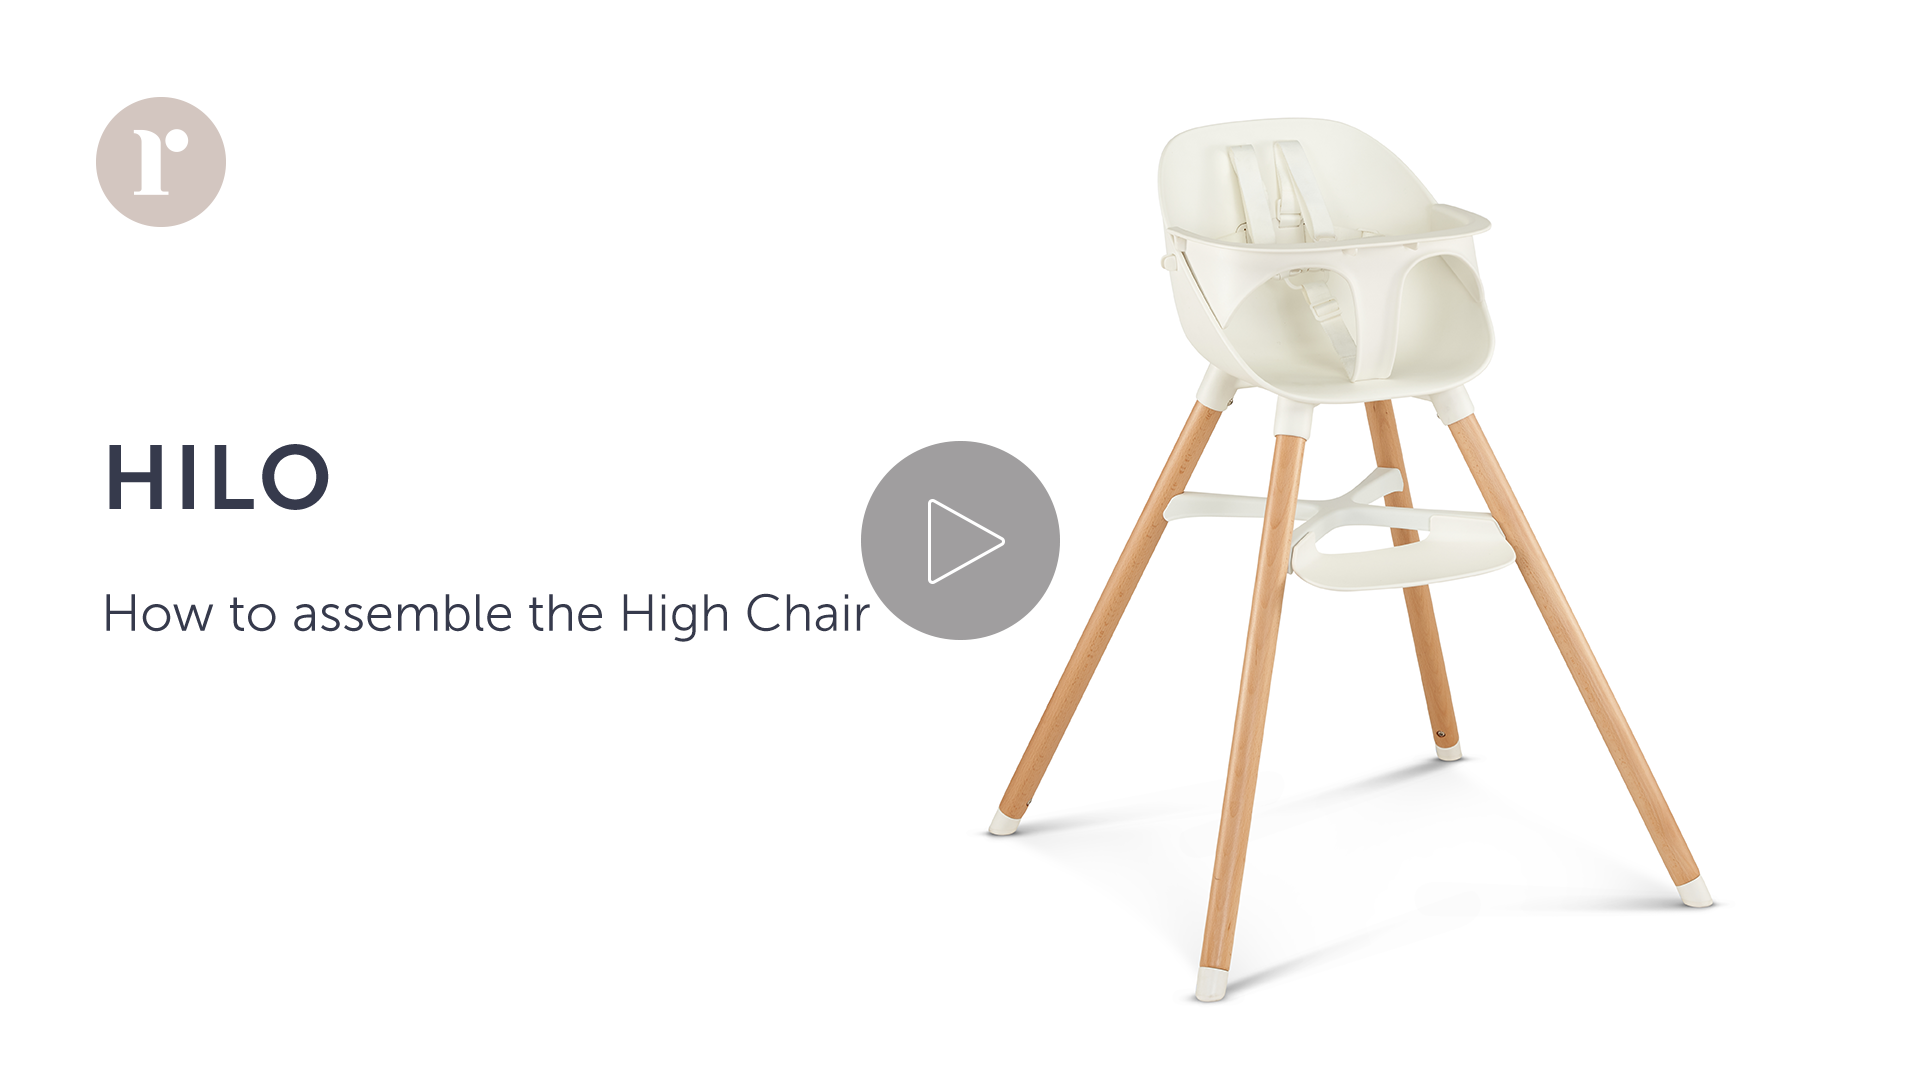 How to assemble the HILO High Chair